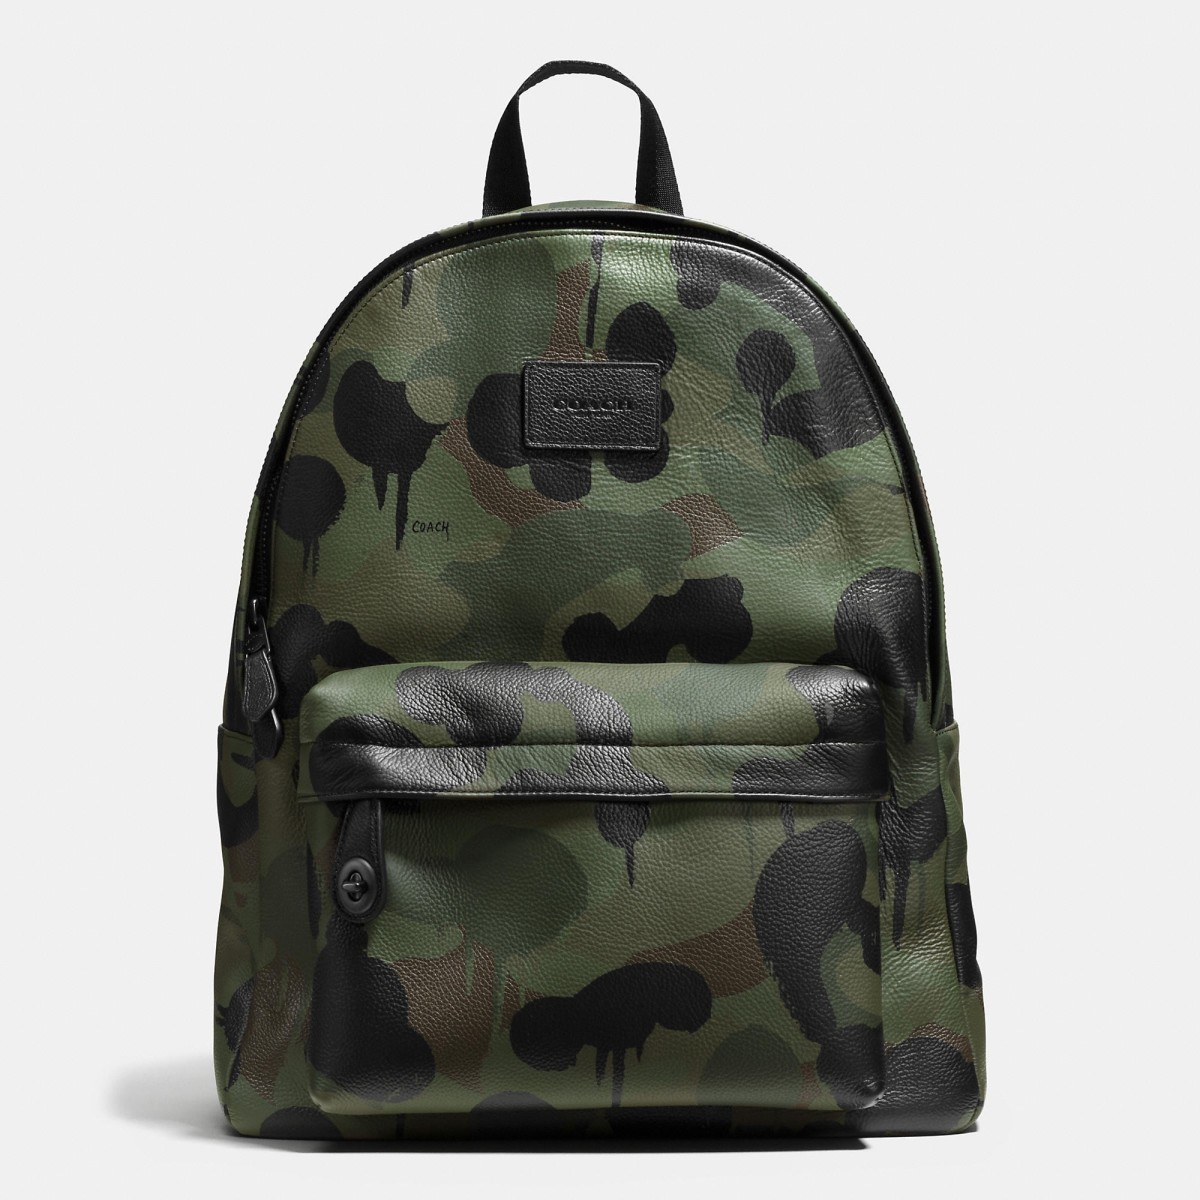 freshness-finds-luxury-camo-backpack-01.jpg